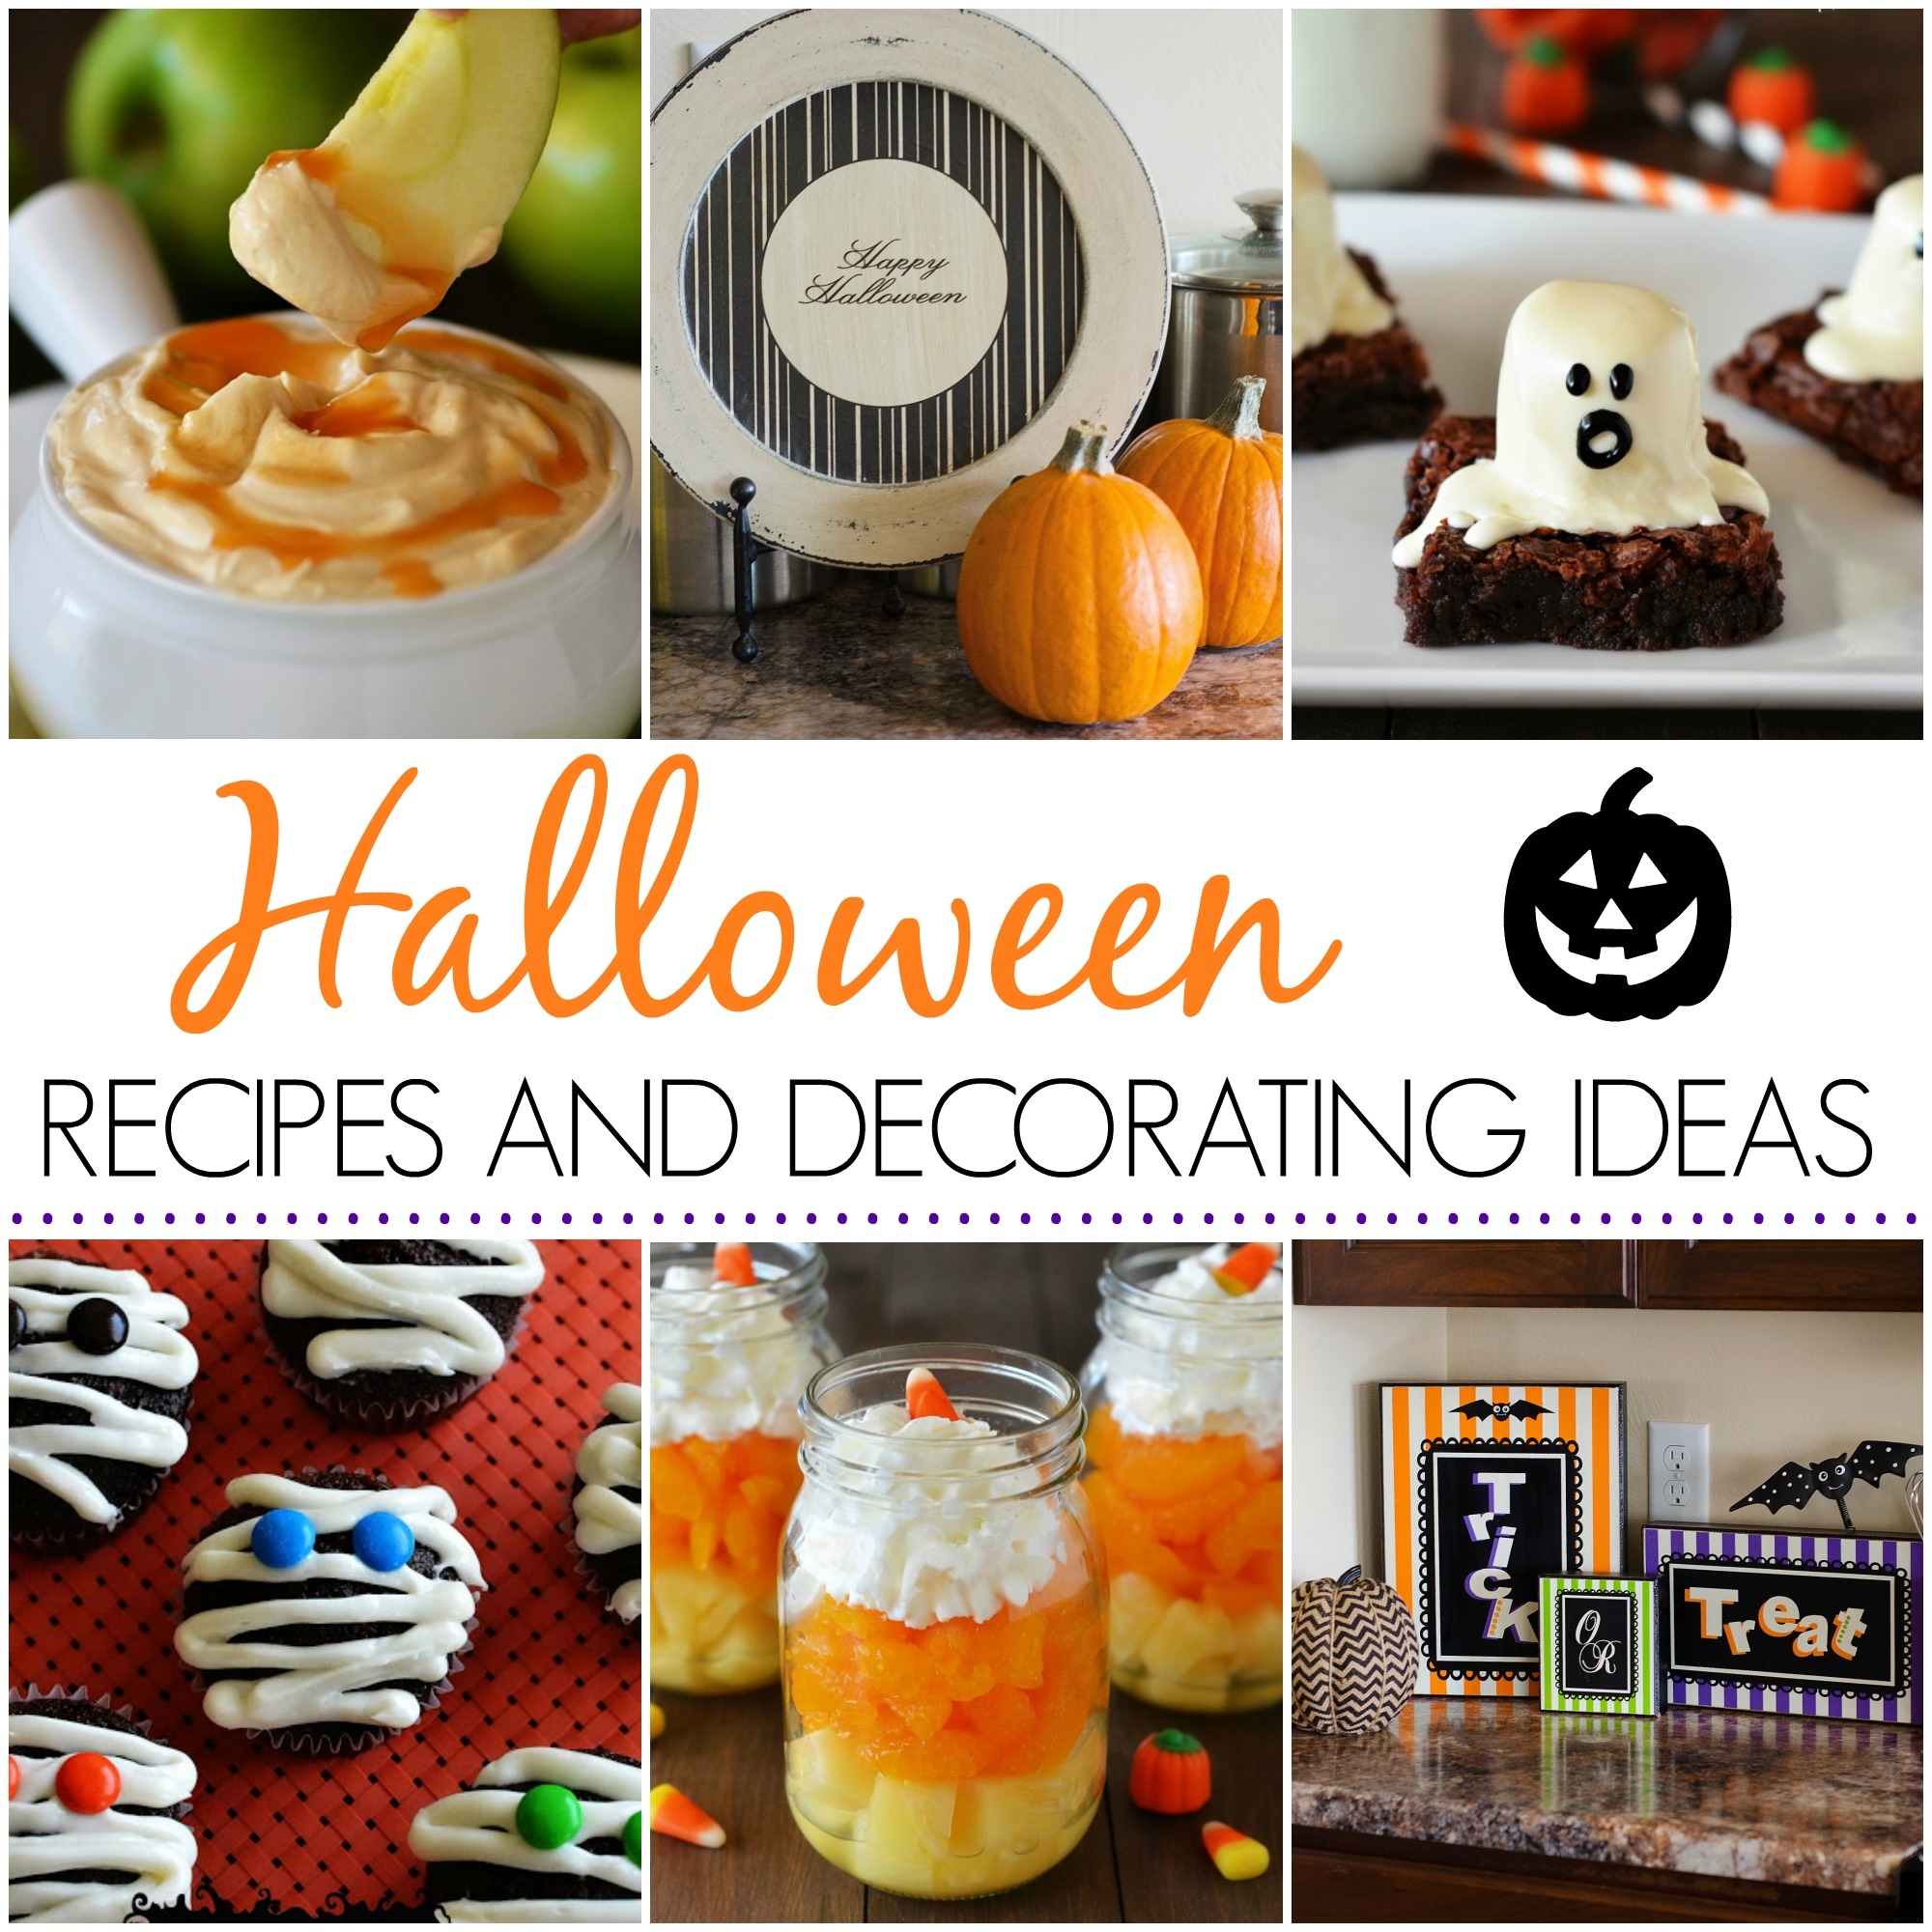 36 Thanksgiving Decorating Ideas And Traditional Recipes: Halloween Recipes And Decorating Ideas